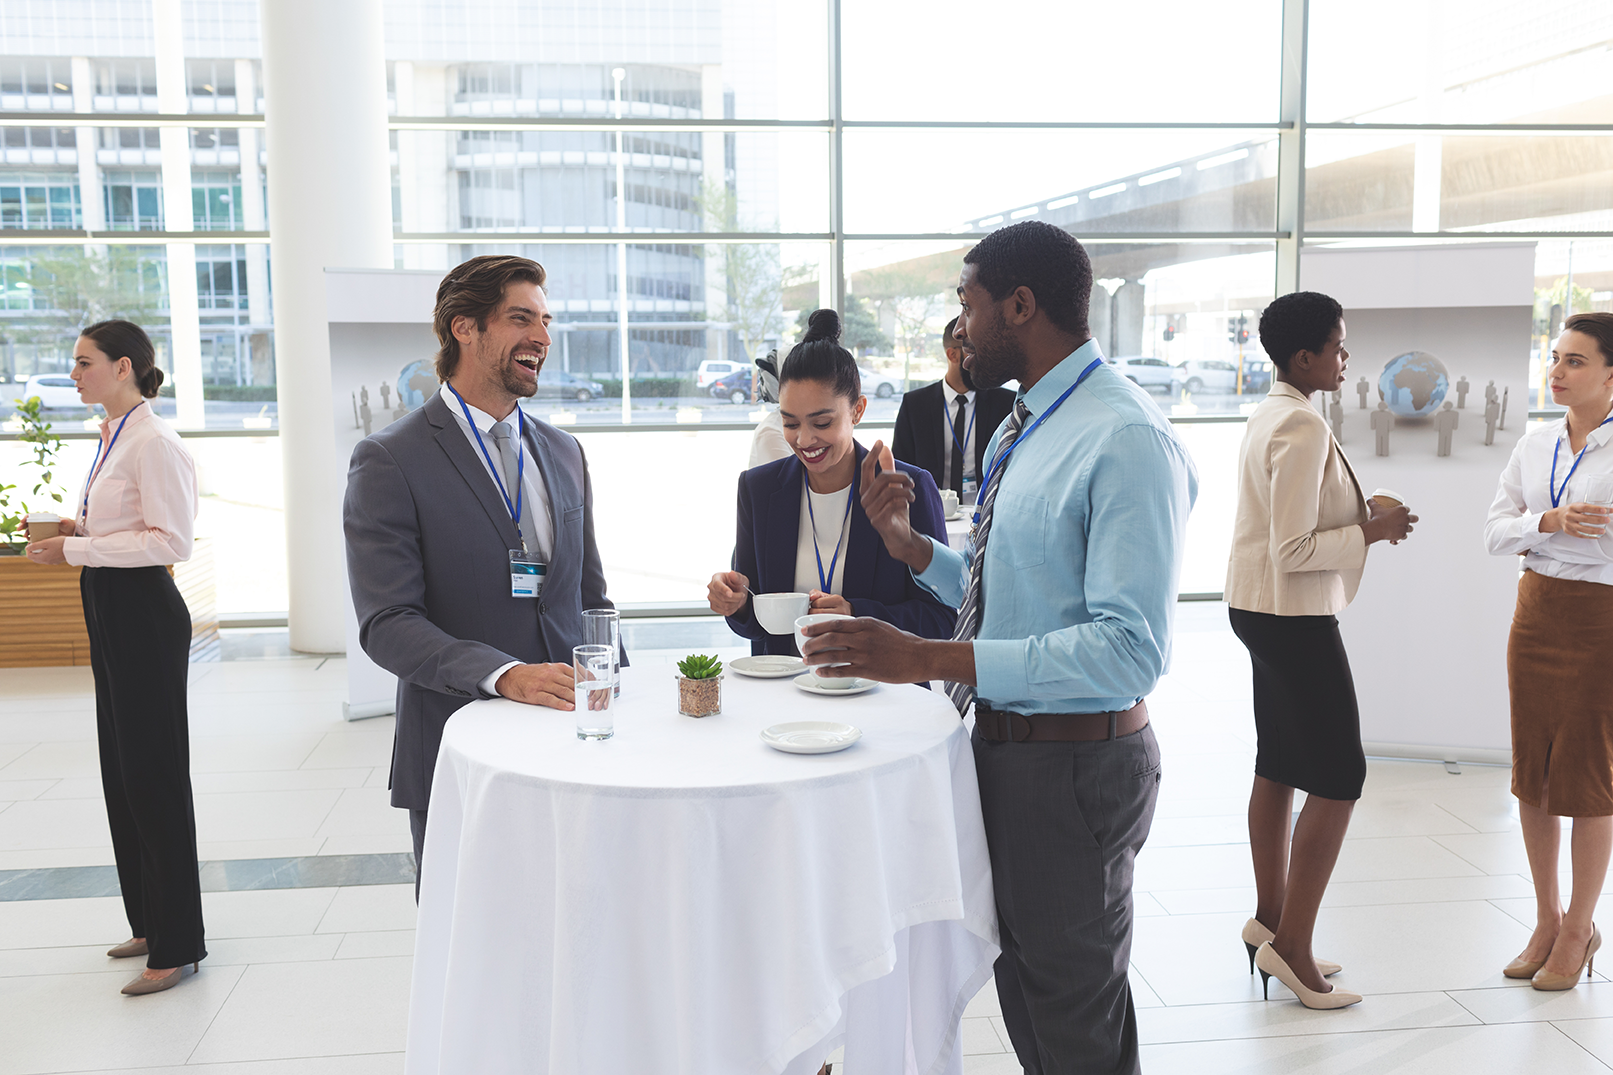 Young business professionals drinking and chatting at a networking event